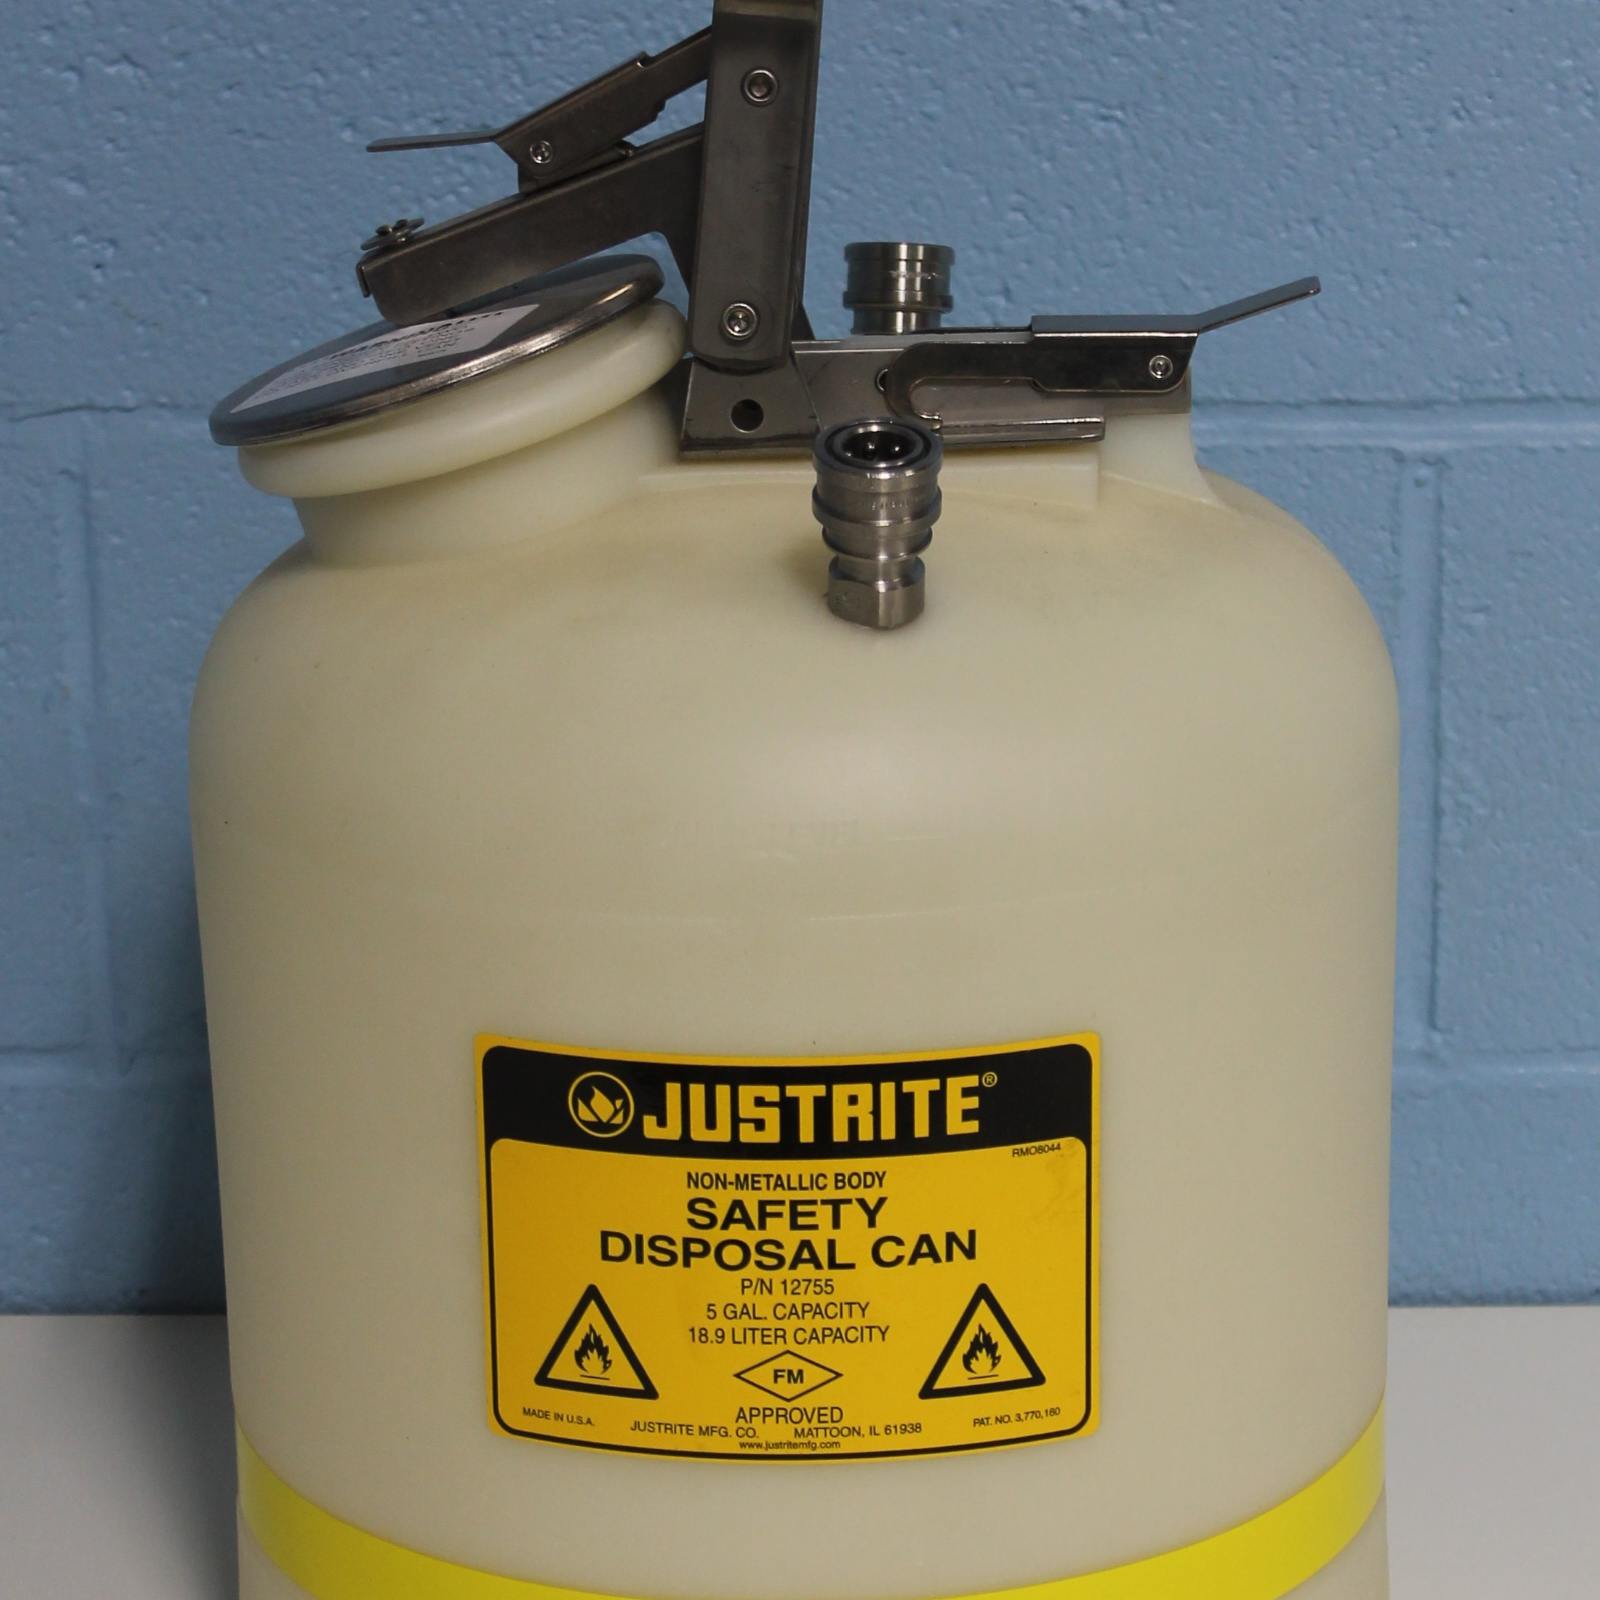 Justrite Model 12755 5 gal (19L) Polyethylene Safety Disposal Can Image